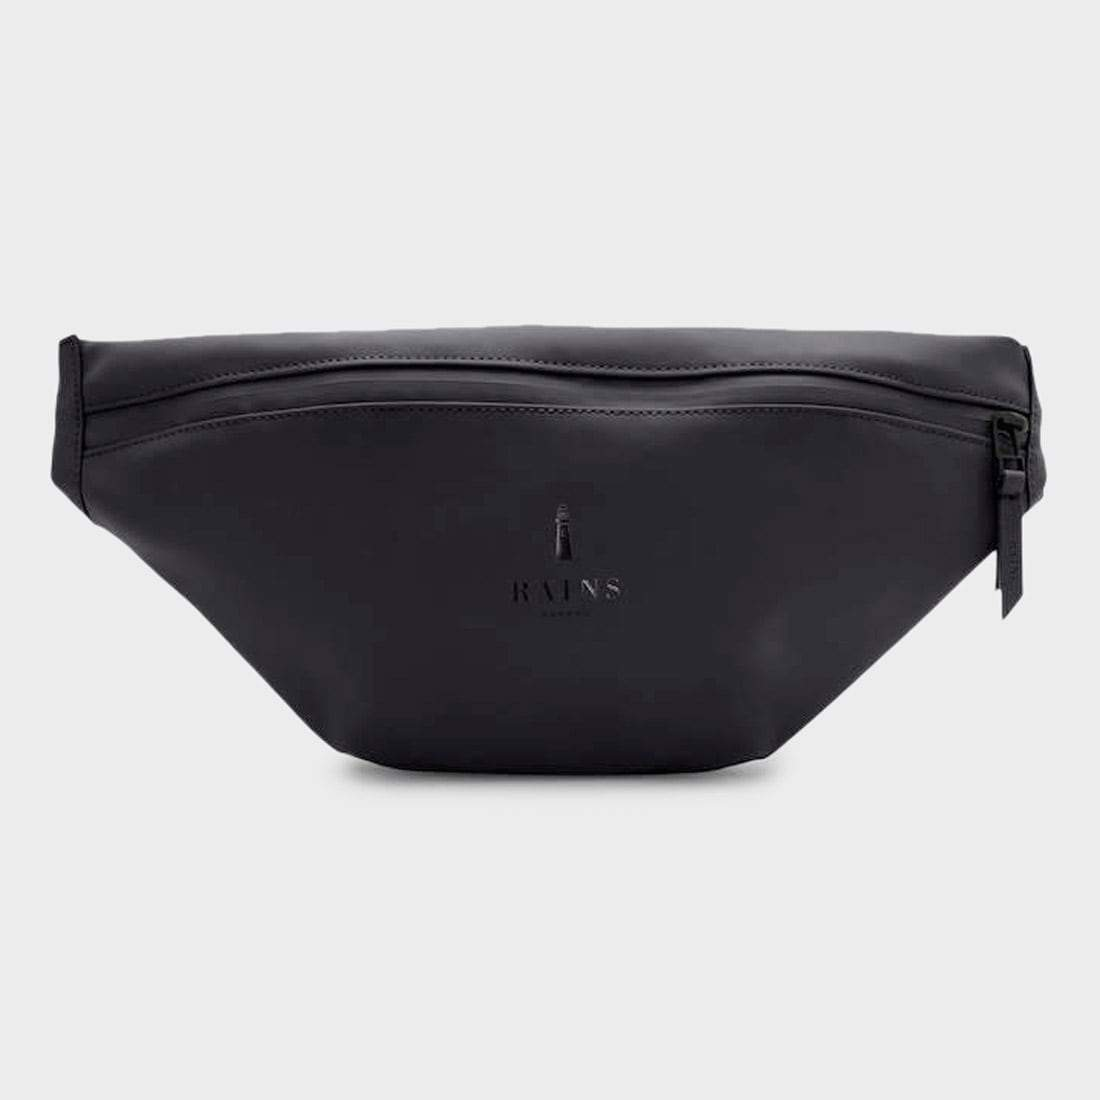 RAINS Bumbag Black